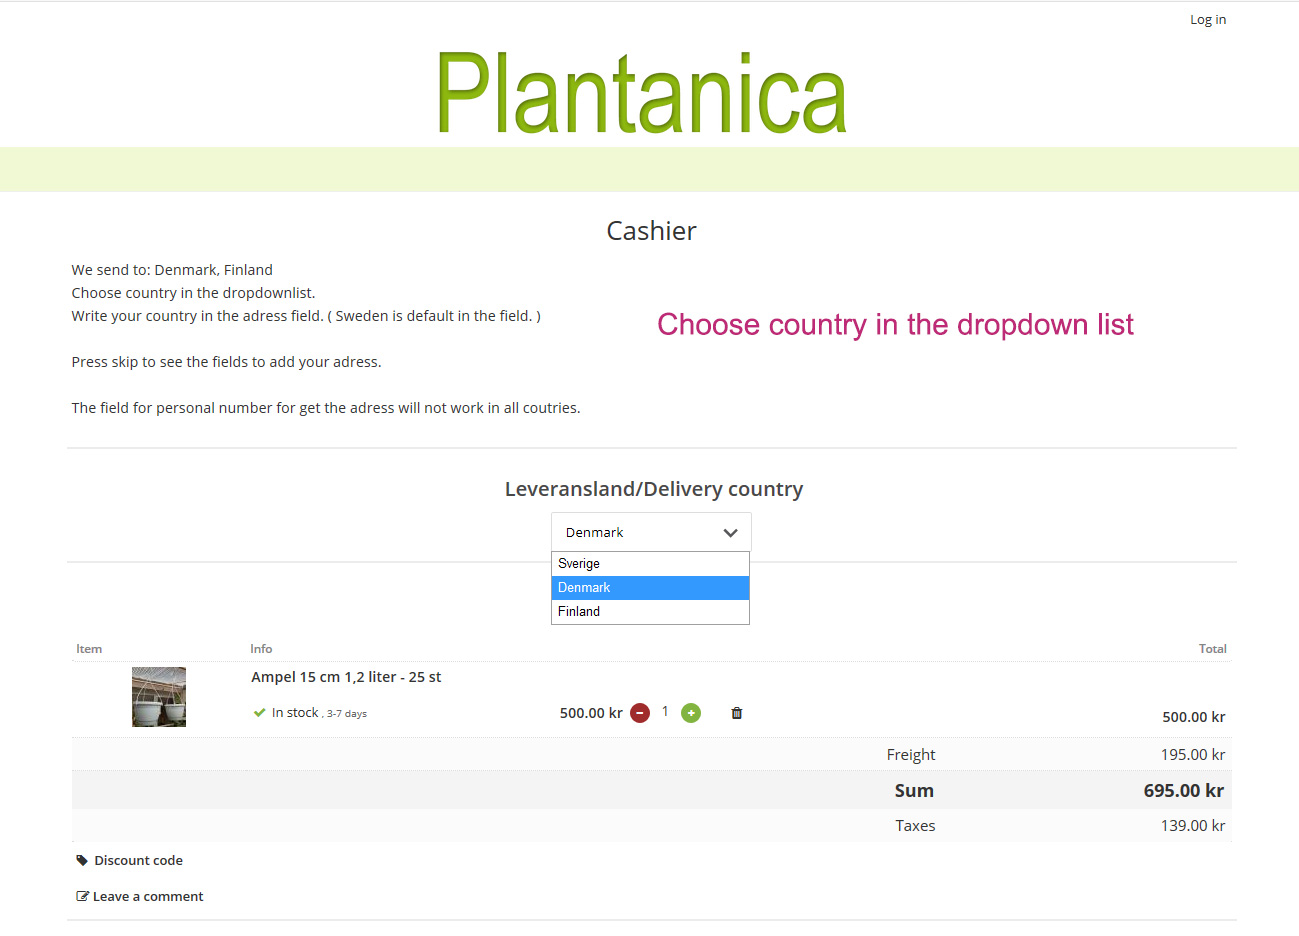 nets checkout for EU costomers at Plantanica